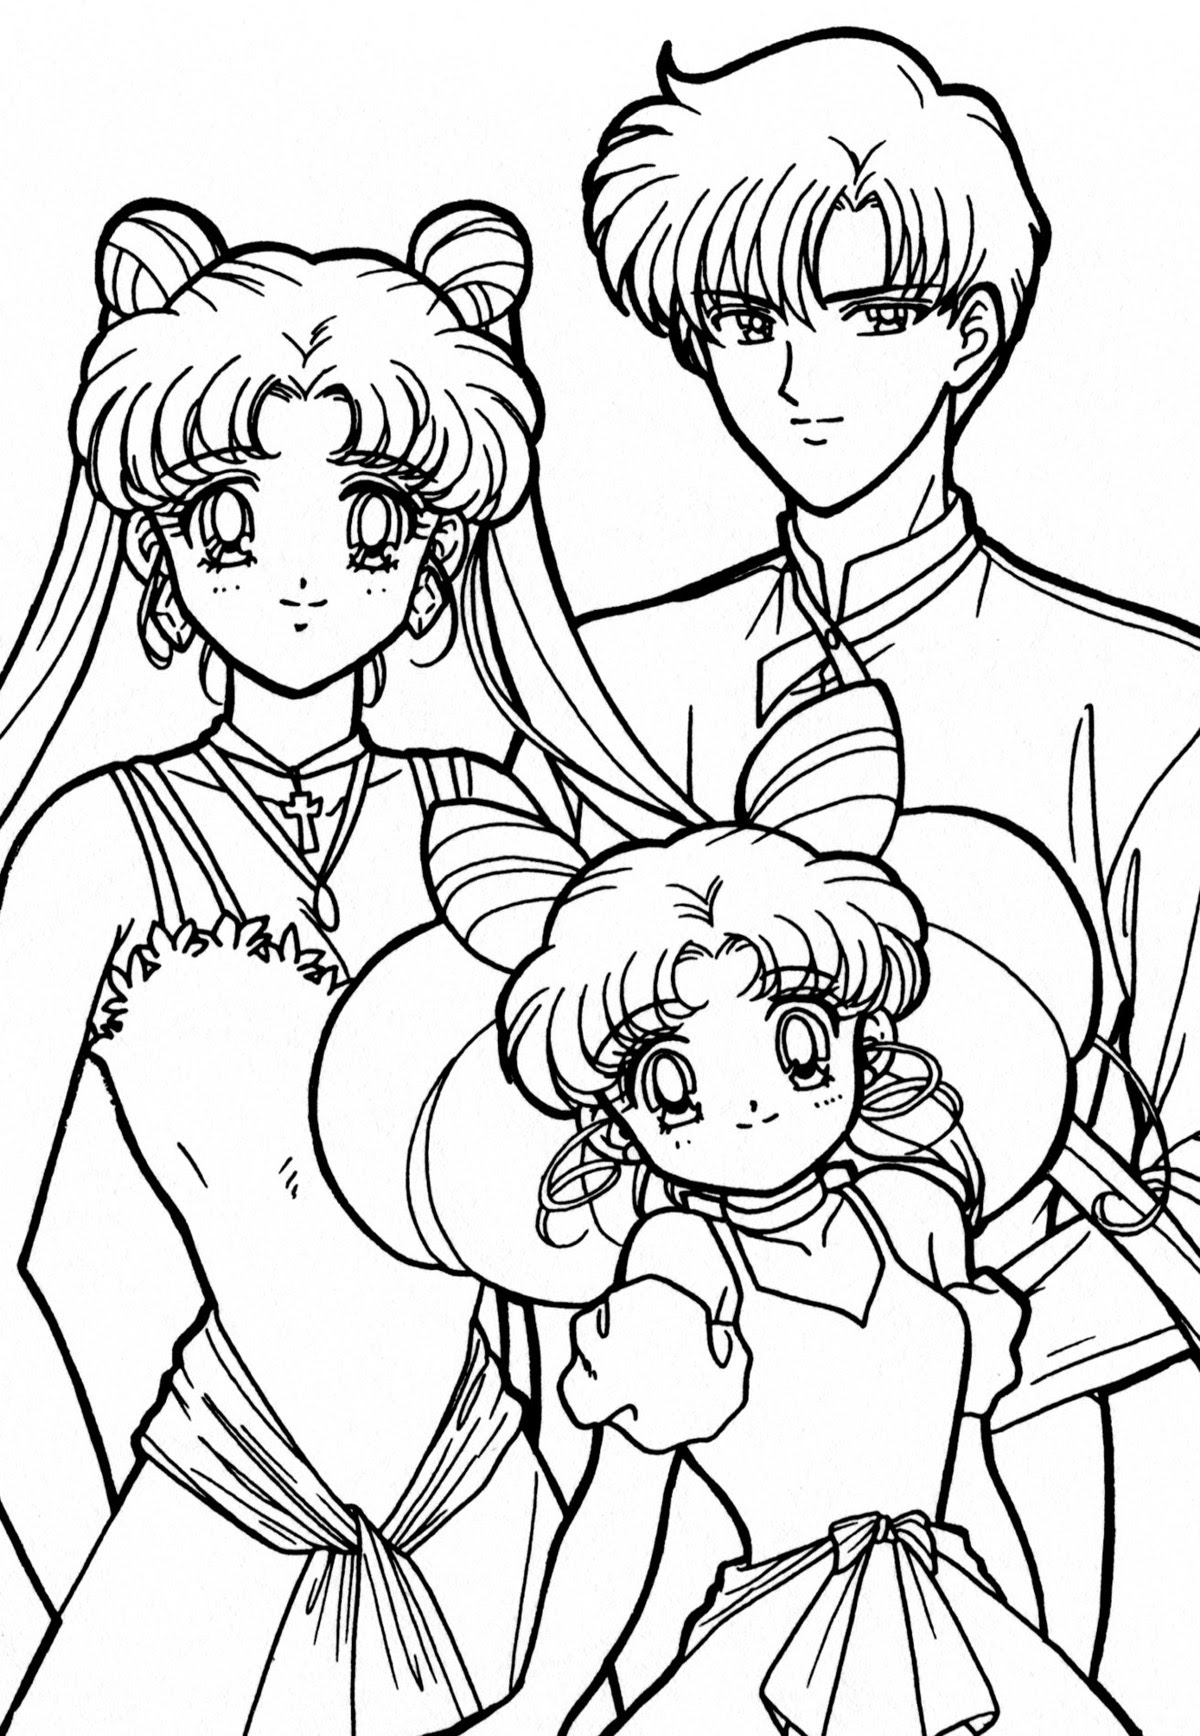 Sailor Moon Group Coloring Pages At Getdrawingscom Free For